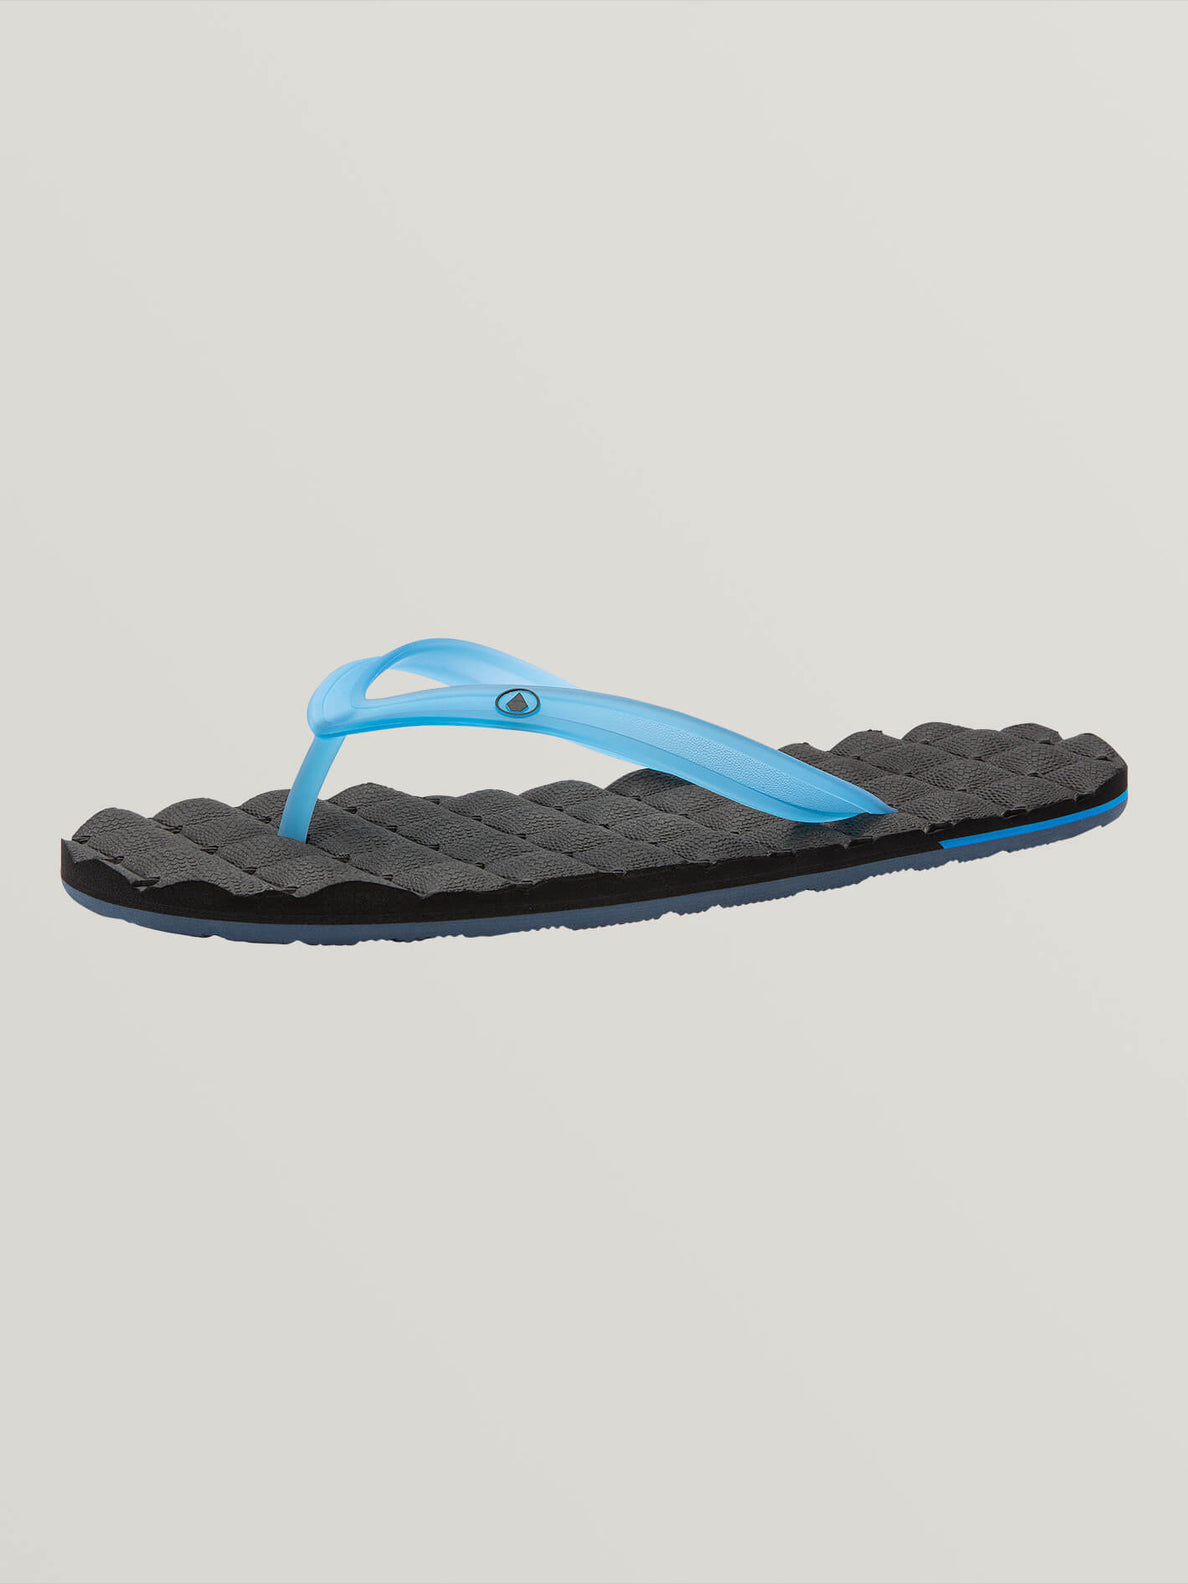 Recliner Rubber 2 Sandal - Royal (V0811882_ROY) [B]